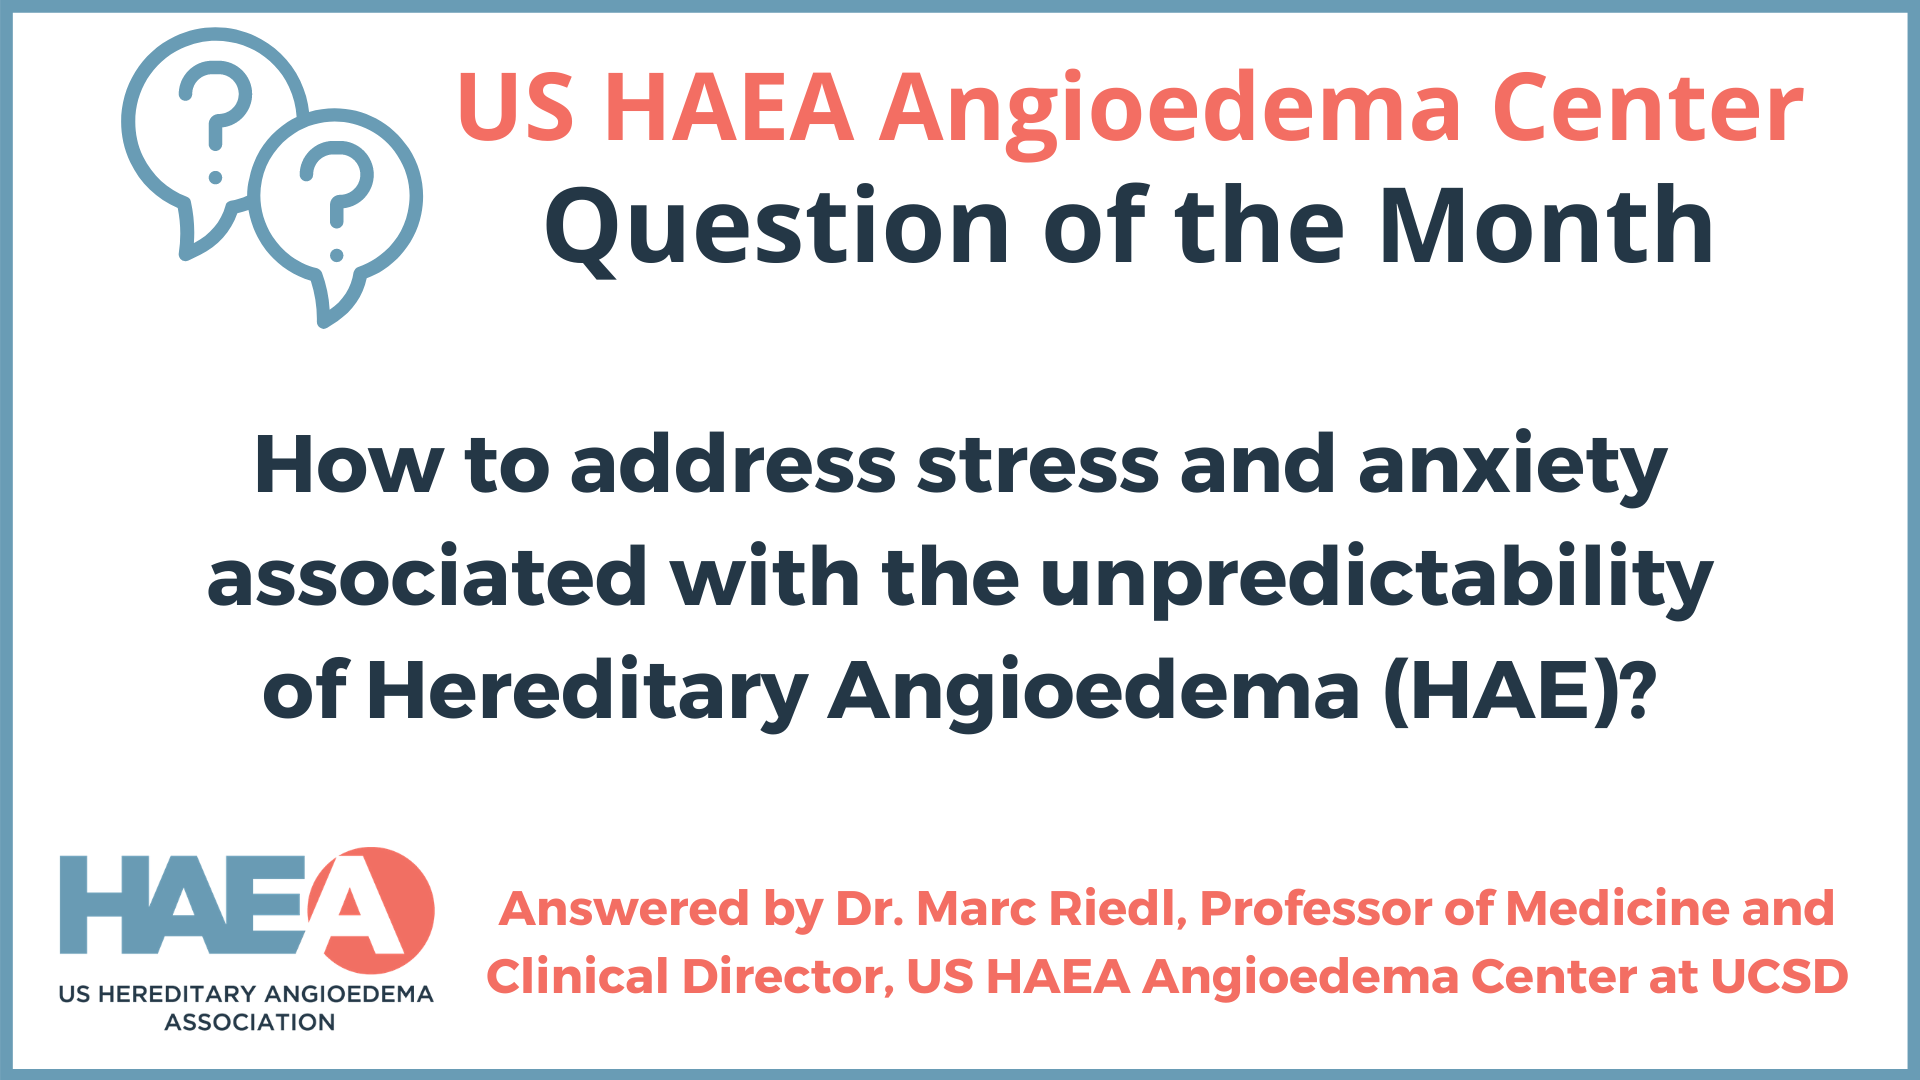 How to address stress and anxiety associated with the unpredictability of Hereditary Angioedema (HAE)?